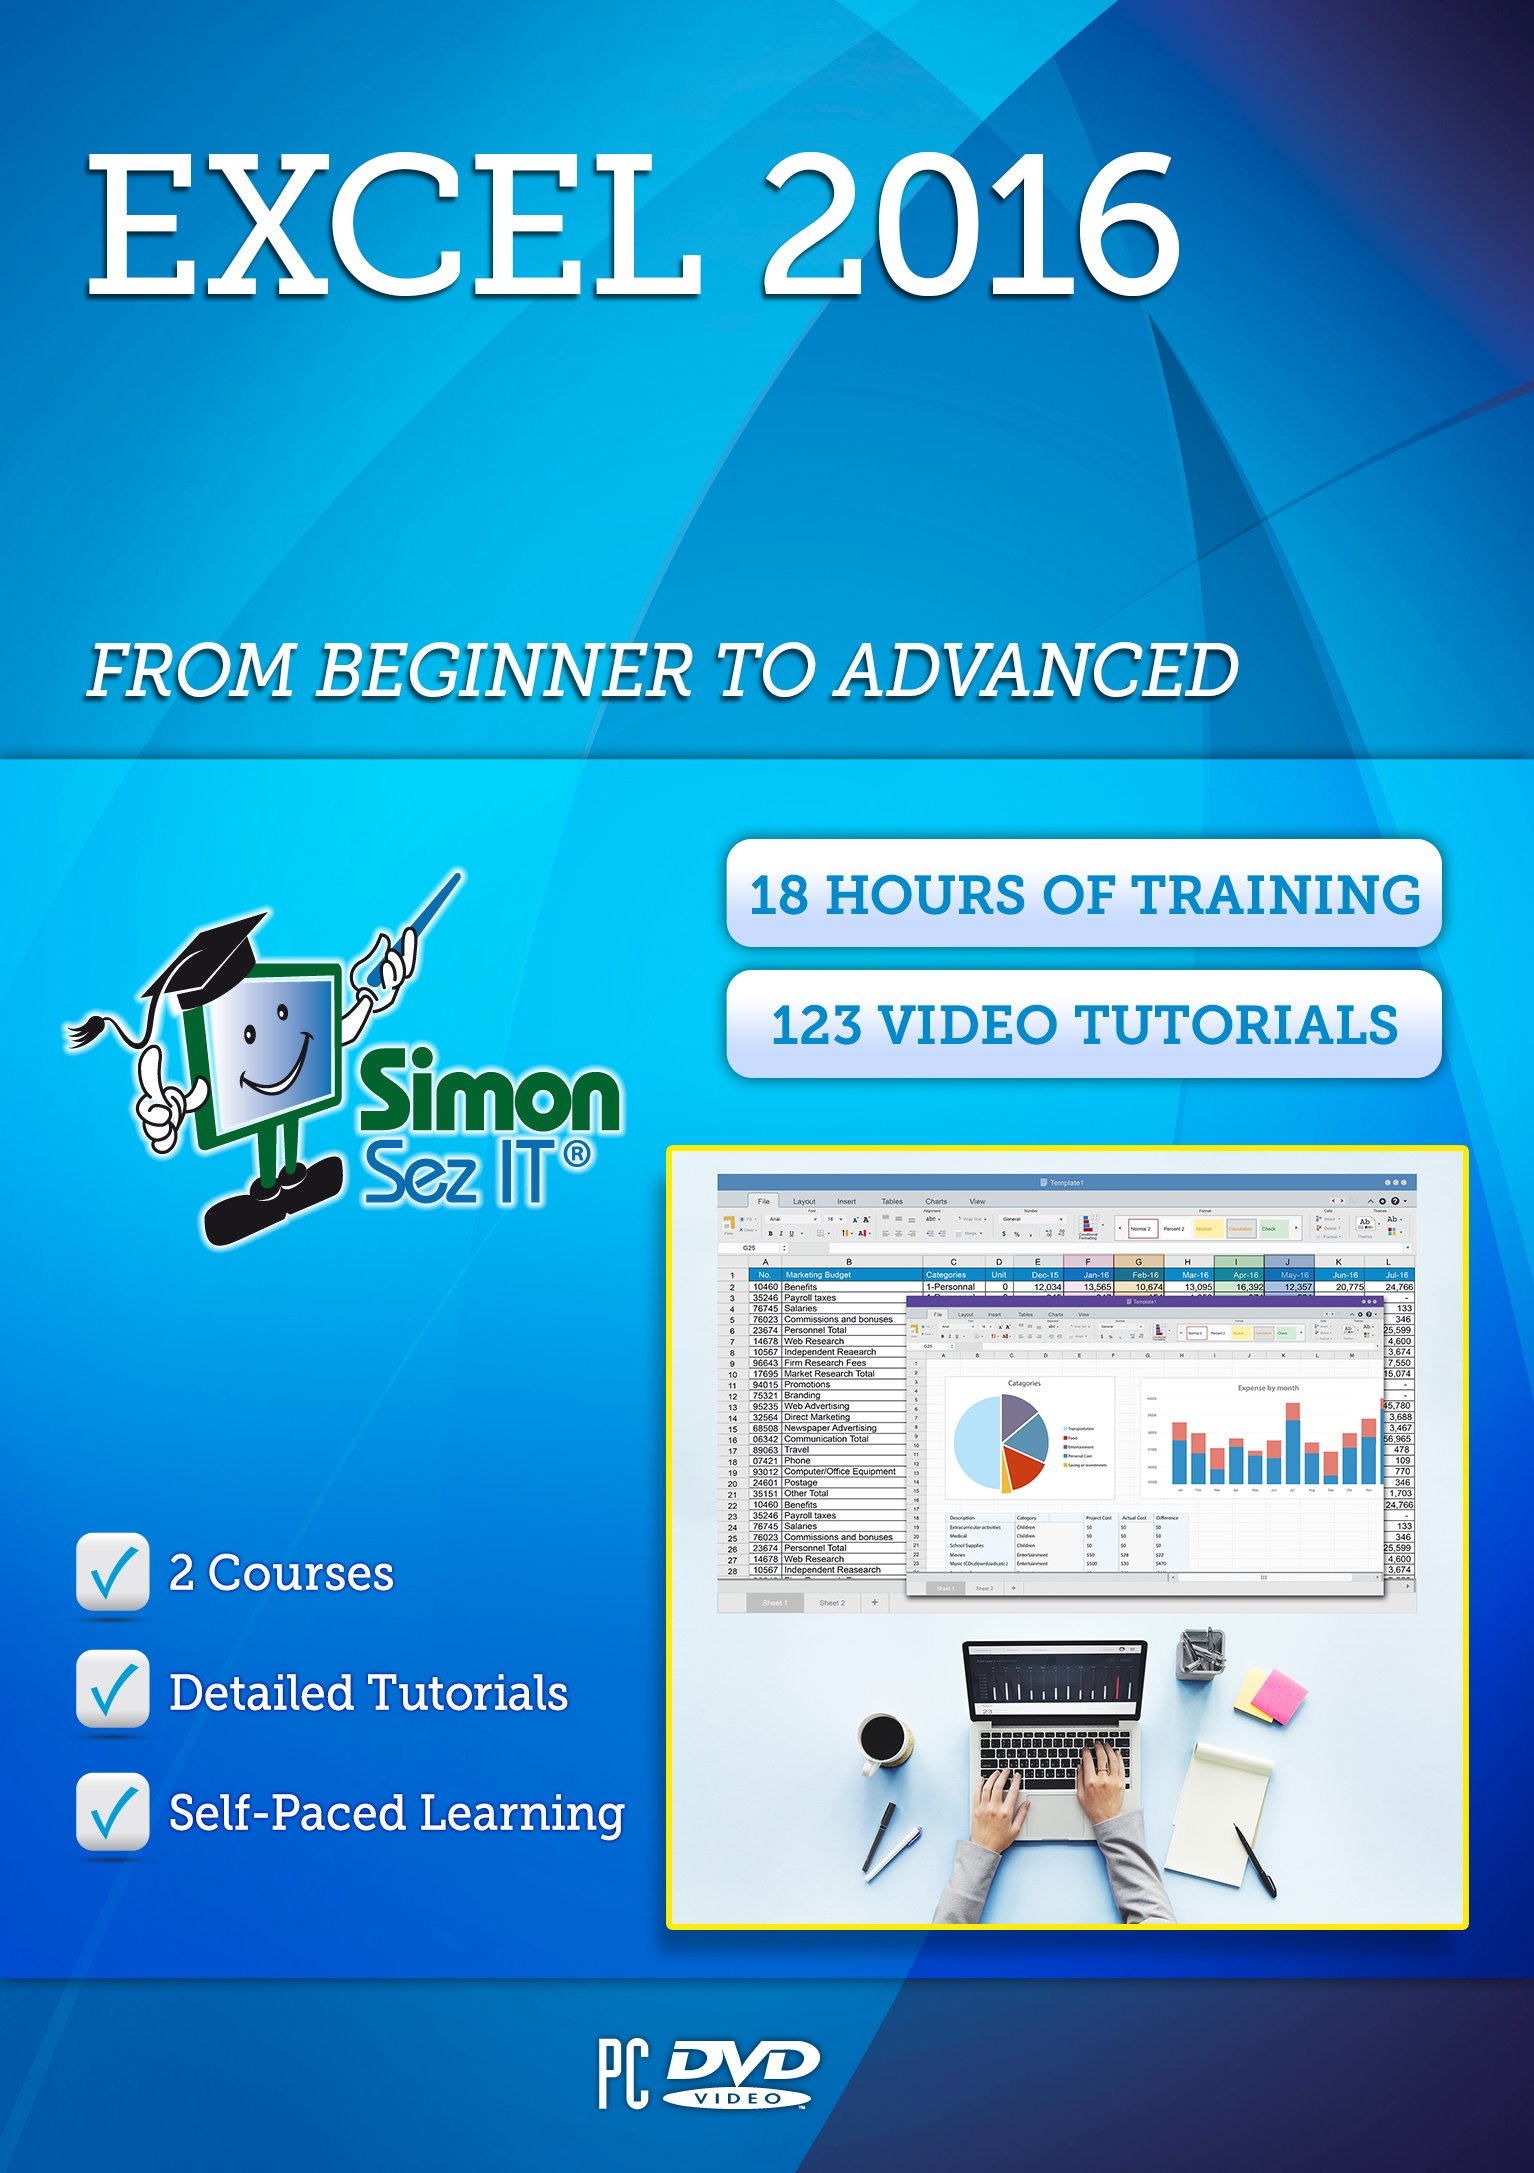 Master Excel 2016 Training Course - From Beginner to Advanced Level by Simon Sez IT